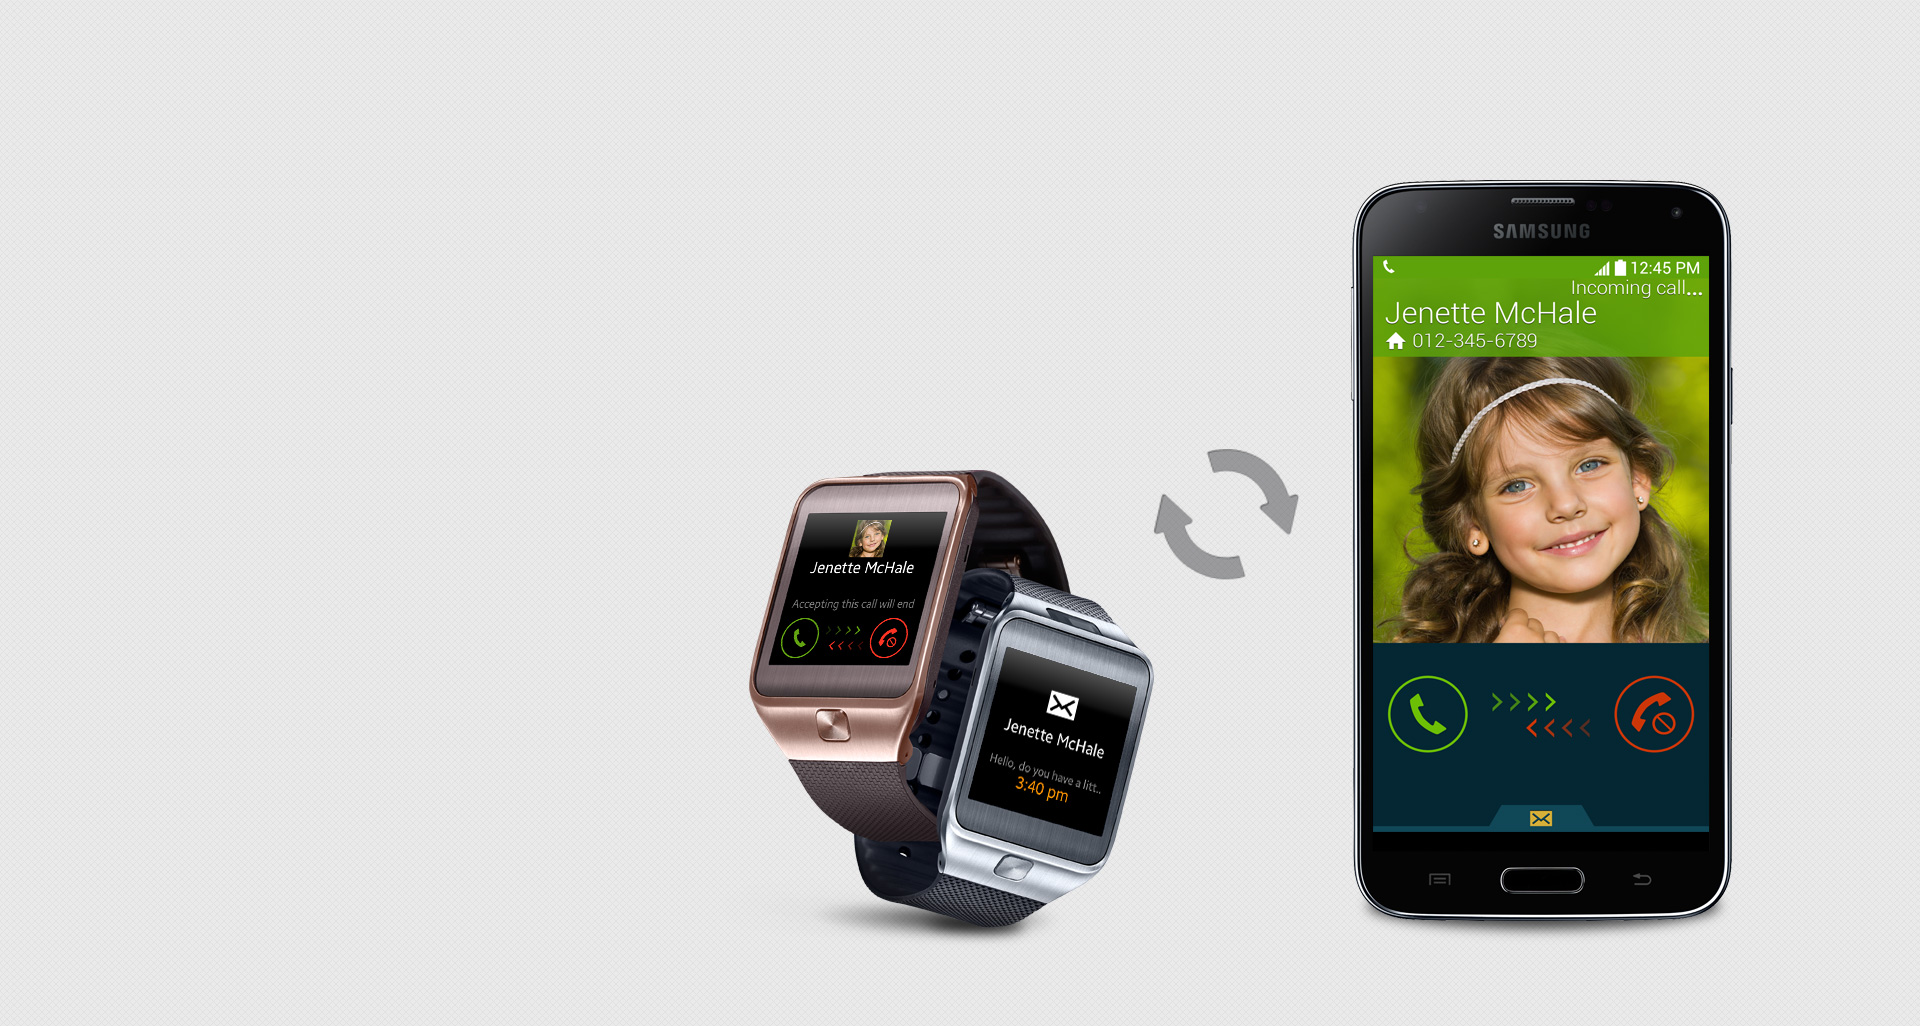 Samsung Gear 2 connect with phone